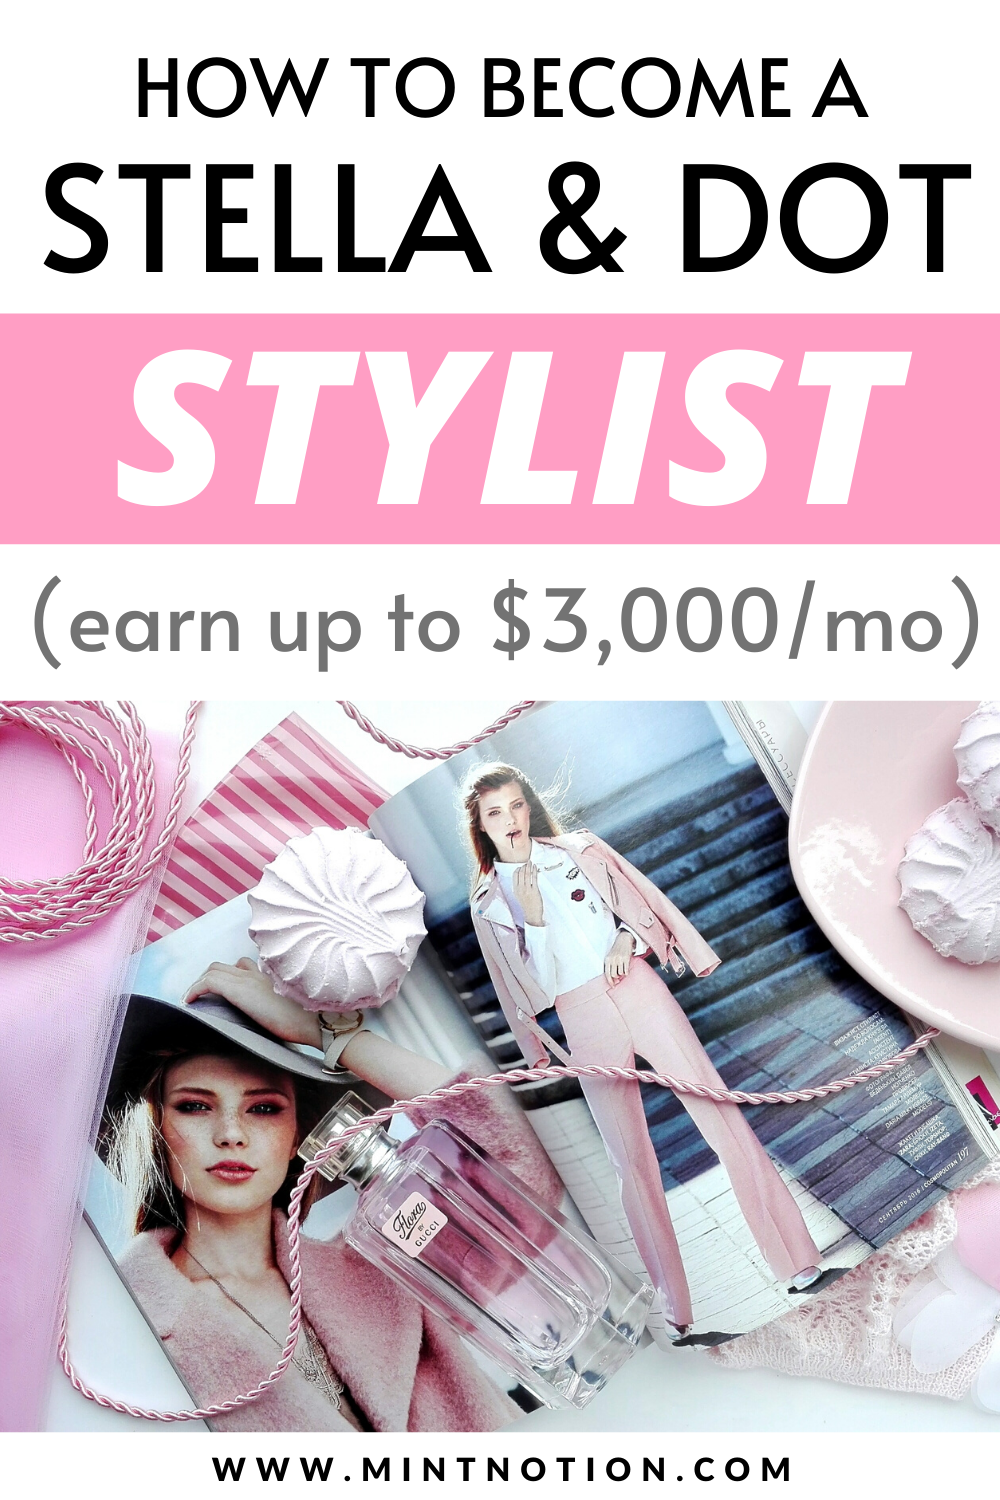 How To Become A Stella & Dot Ambassador – Make Money From Home